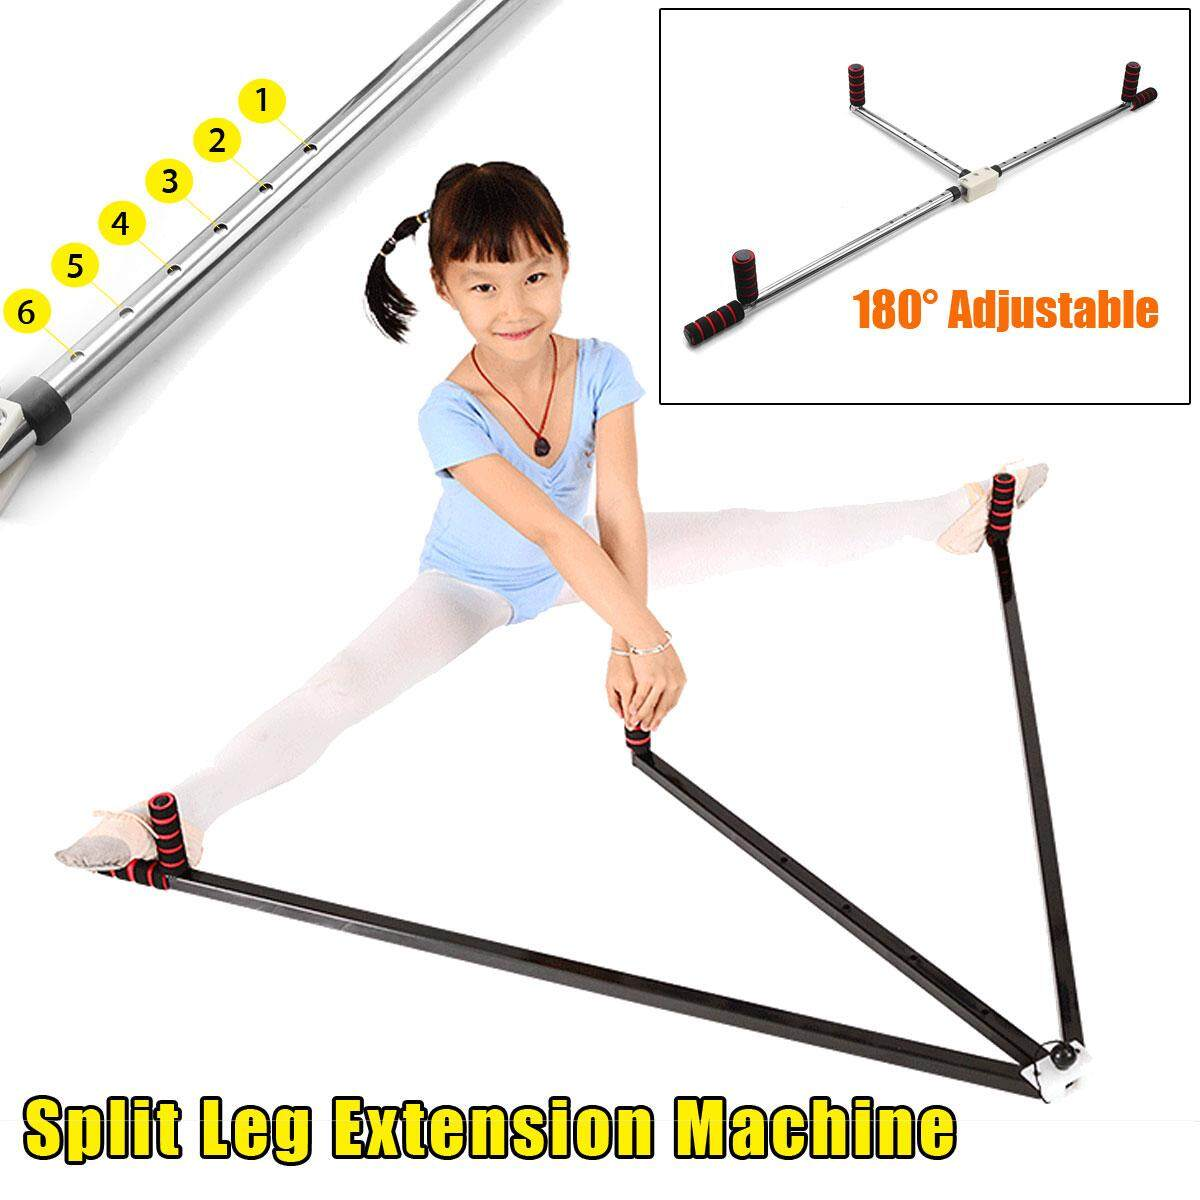 Leg Extension Machine Flexibility Training Tool Split Legs Ligament Stretcher By Audew.